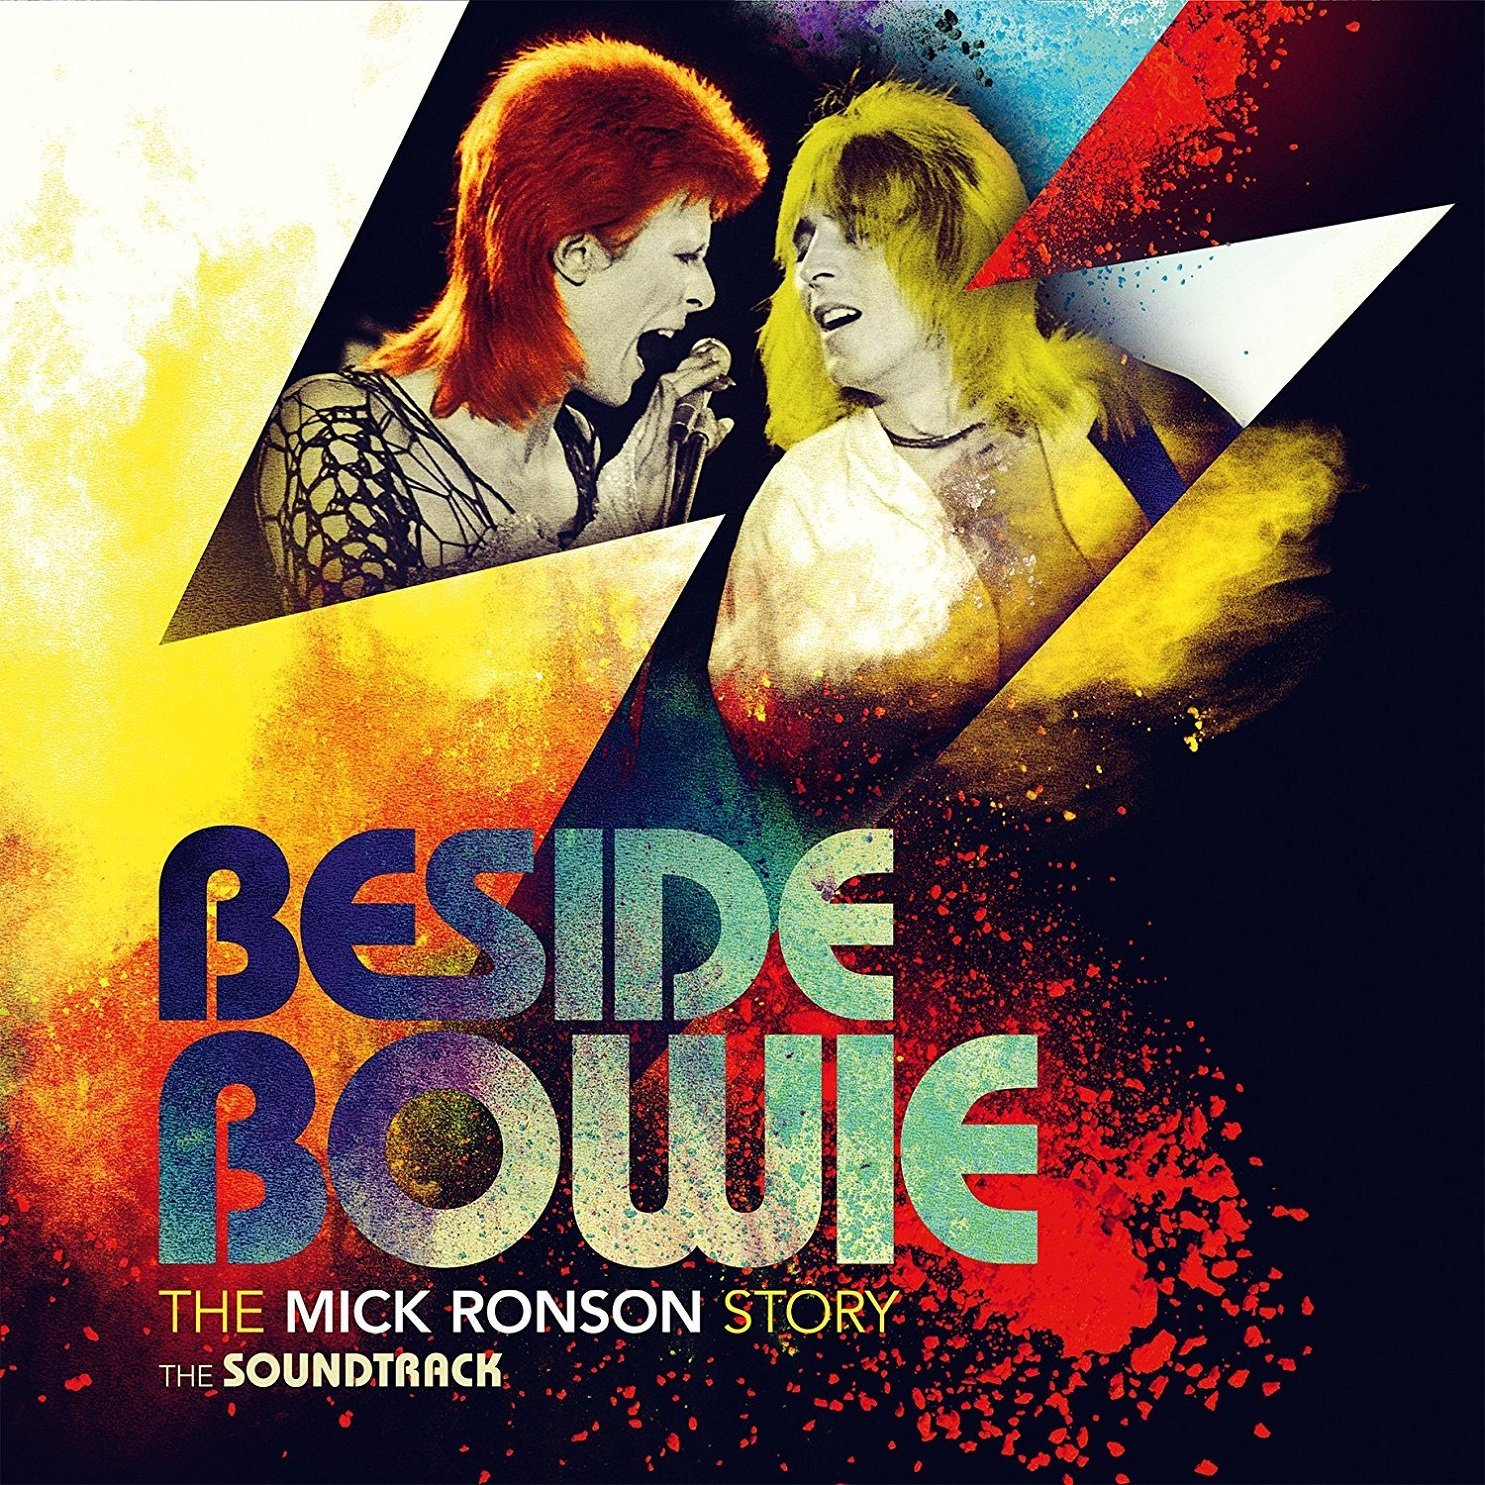 Beside Bowie, The Mick Ronson Story